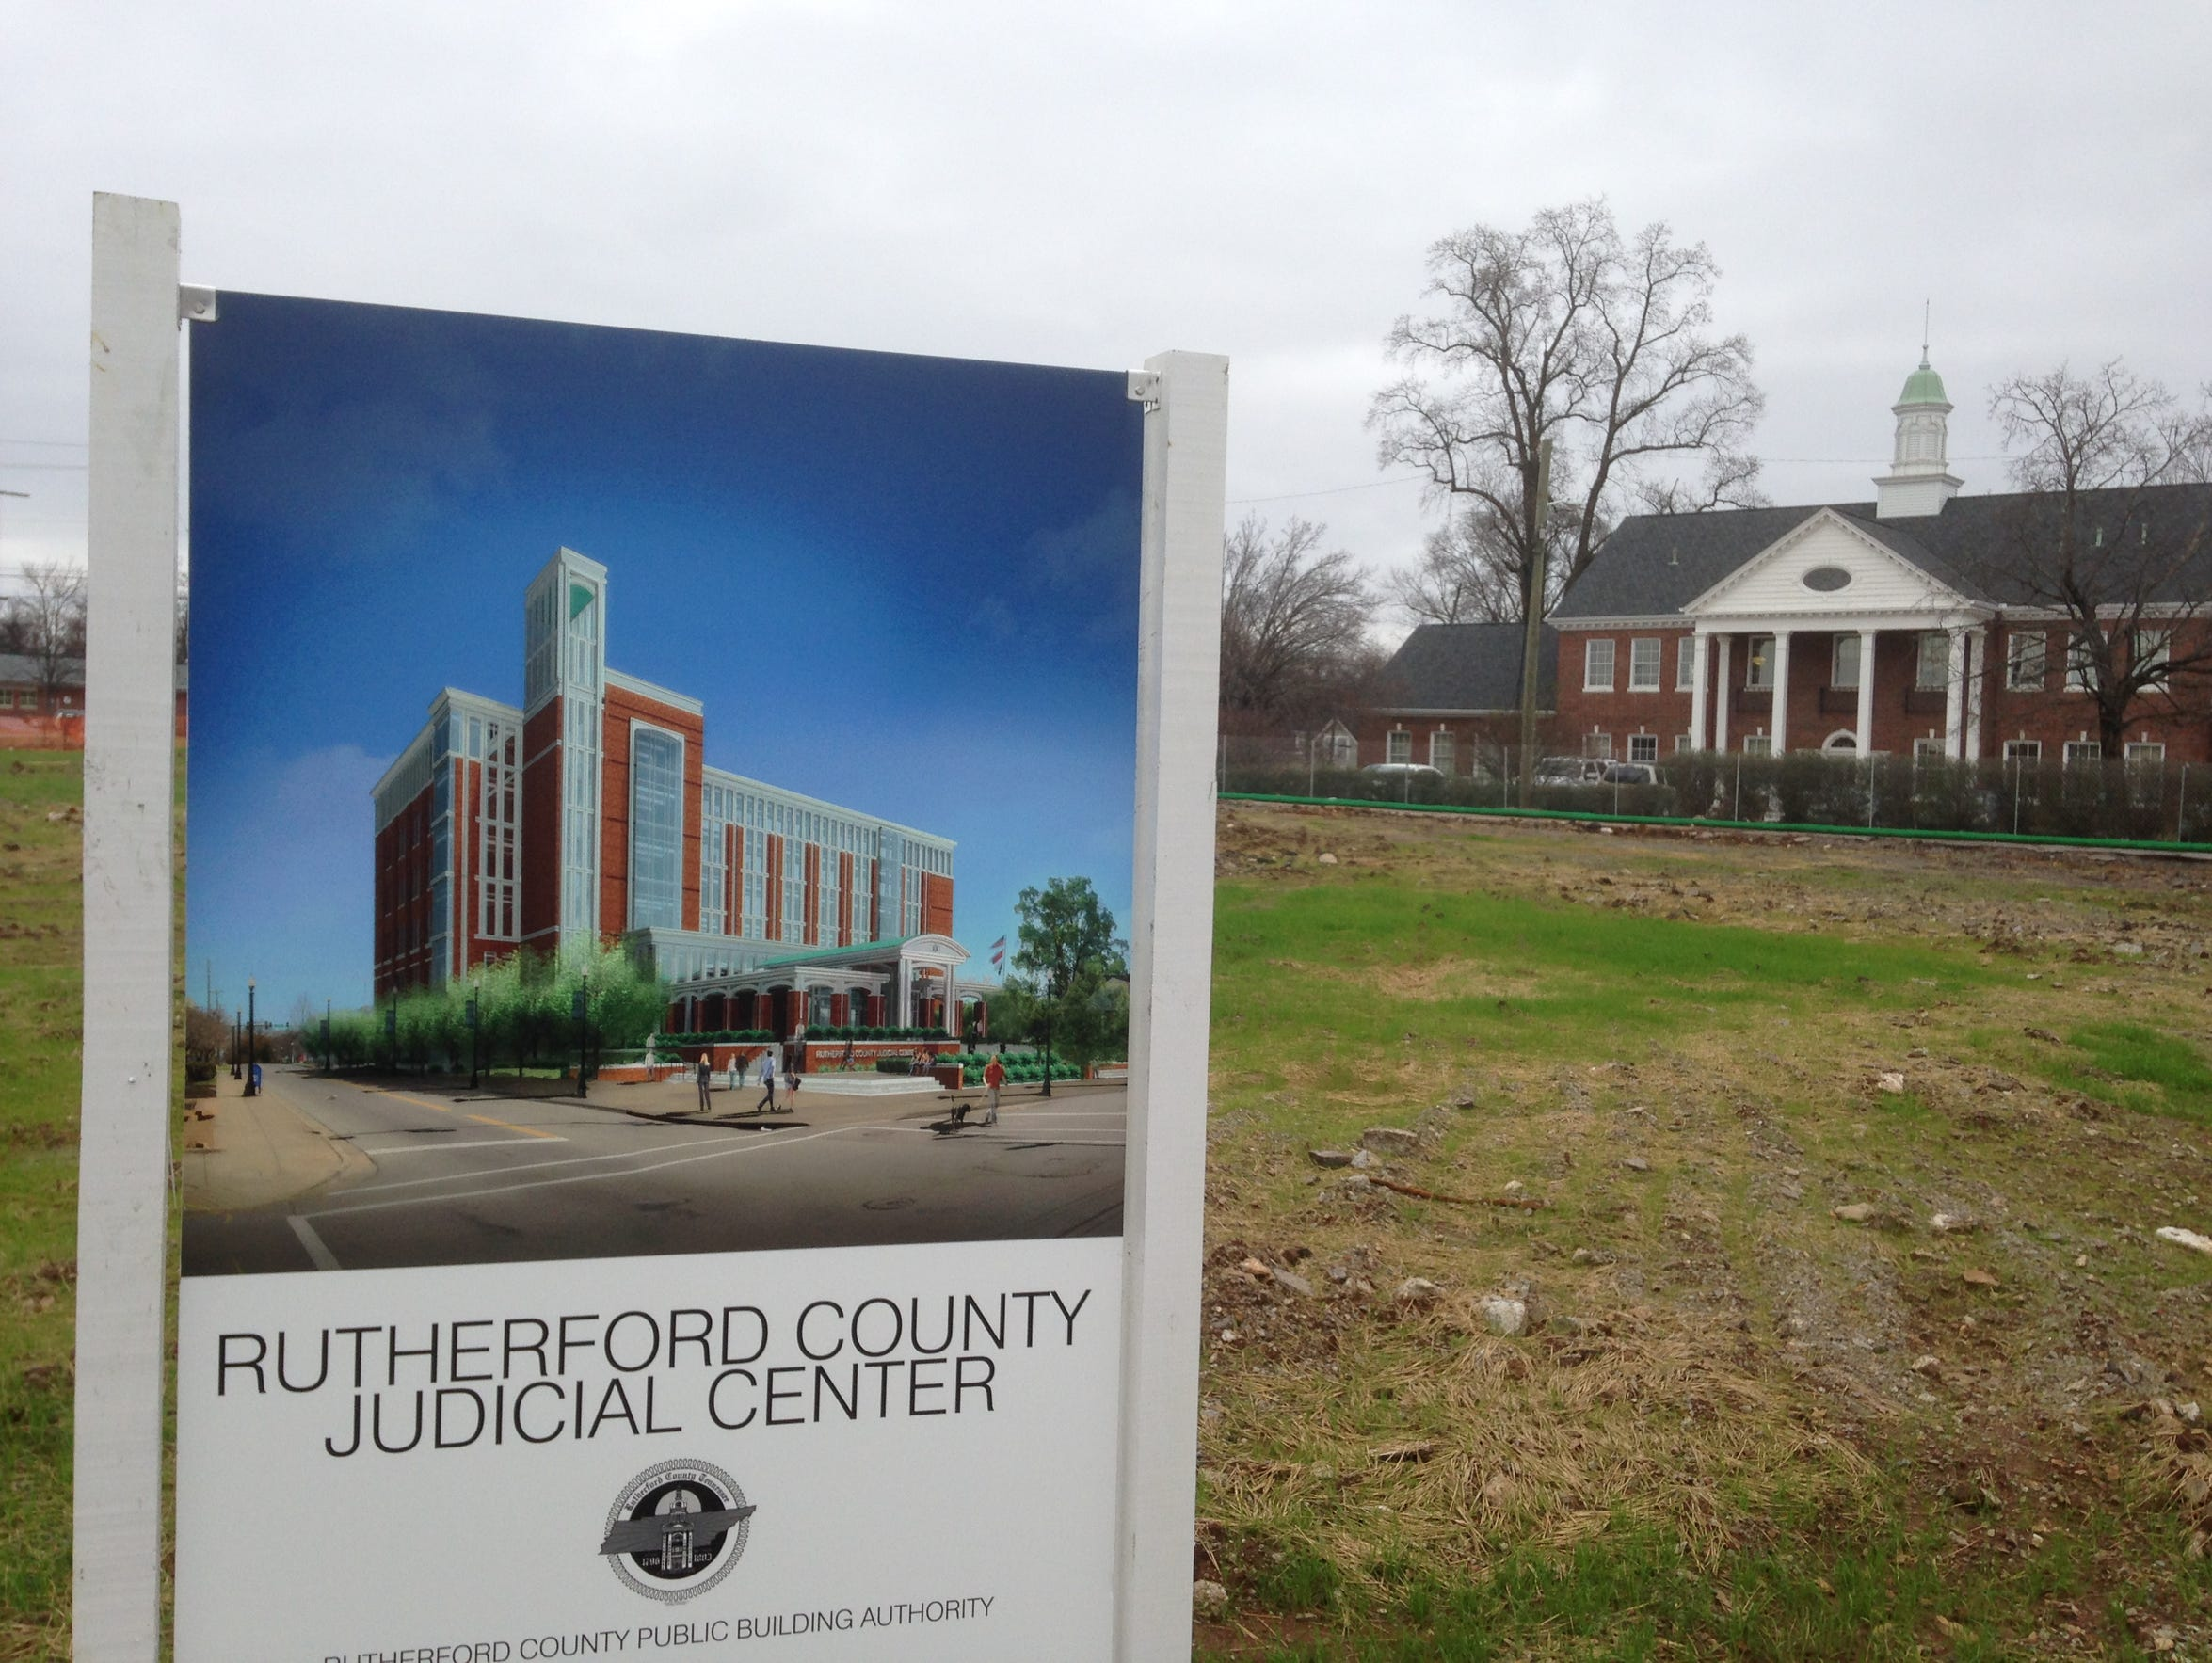 This Rutherford County Judicial Center sign shows a